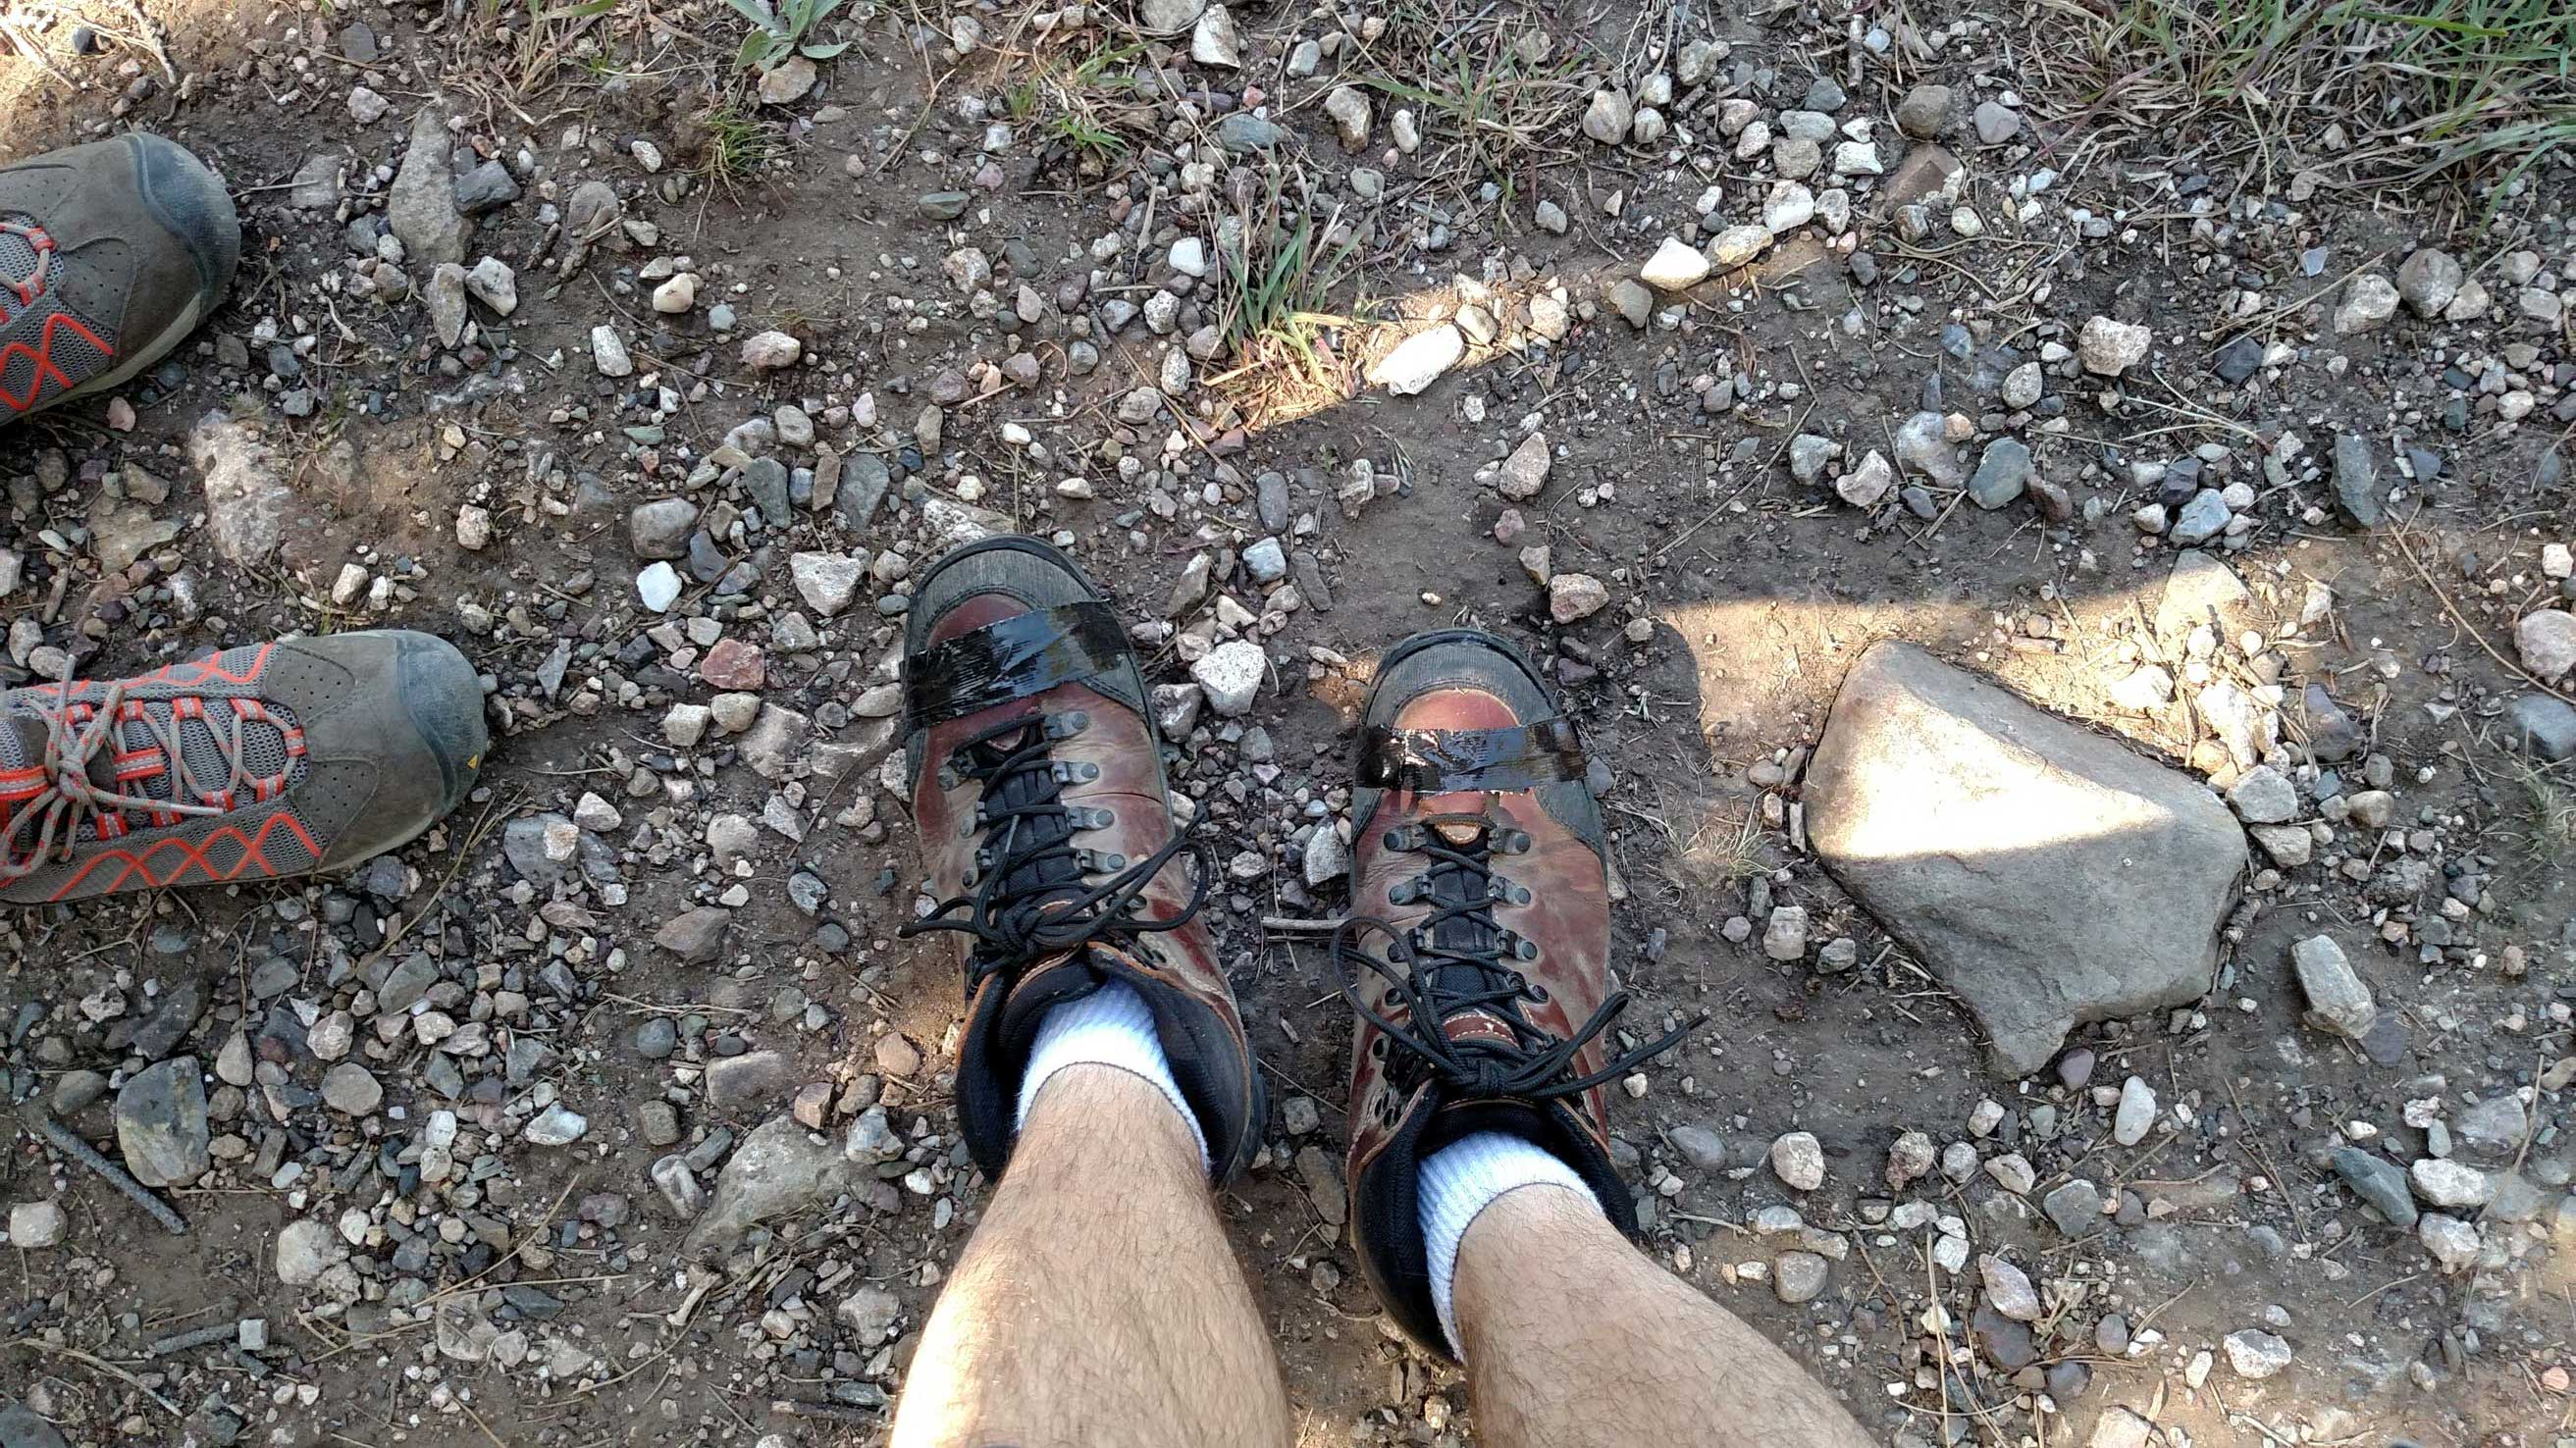 Macgyver style hiking boots.